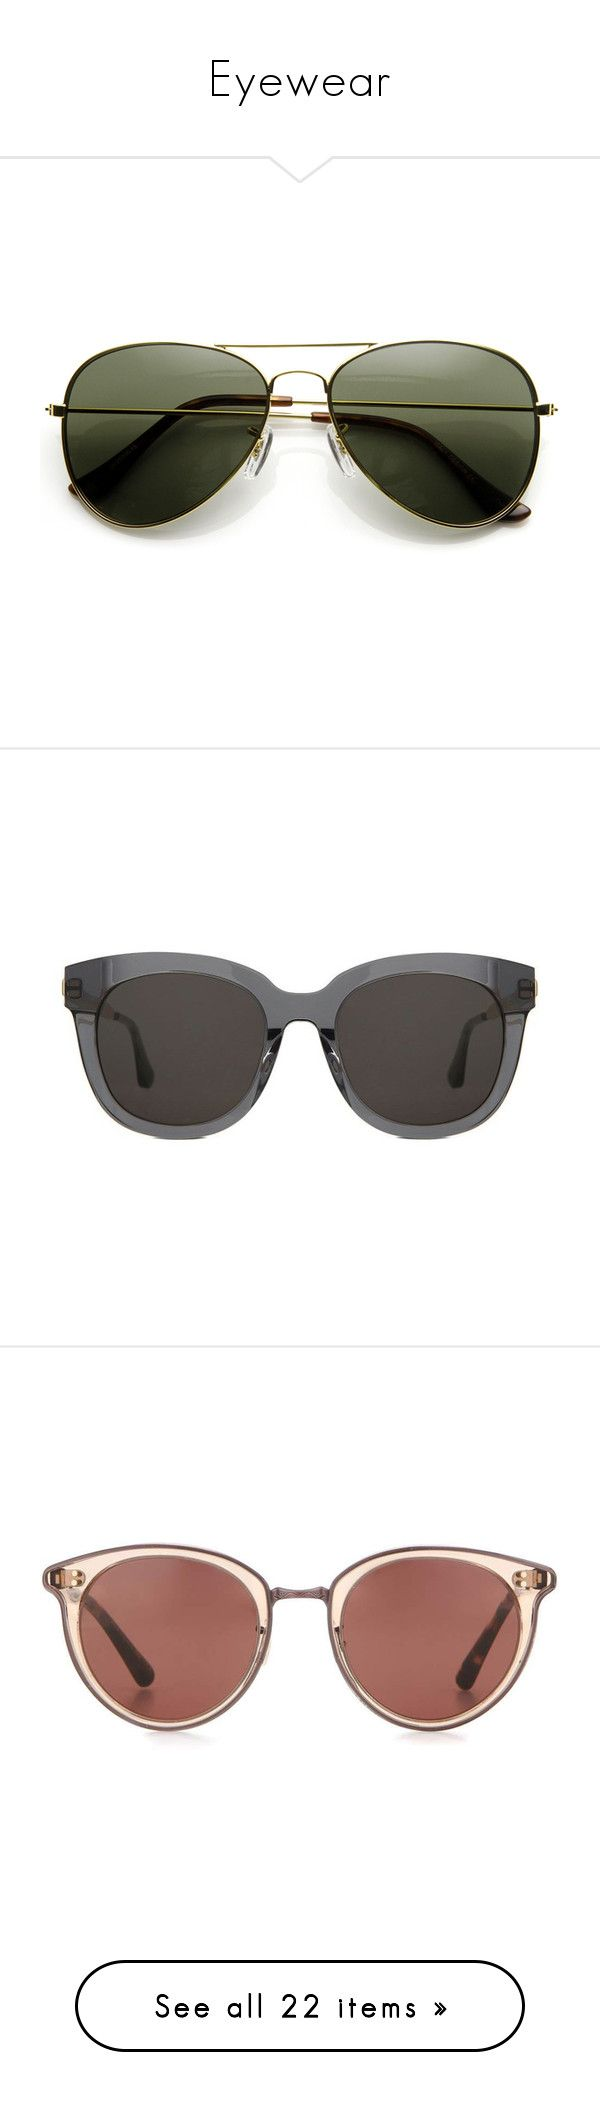 """""""Eyewear"""" by mia-christine ❤ liked on Polyvore featuring men's fashion, men's accessories, men's eyewear, men's sunglasses, mens aviator sunglasses, accessories, eyewear, sunglasses, glasses and glasses."""